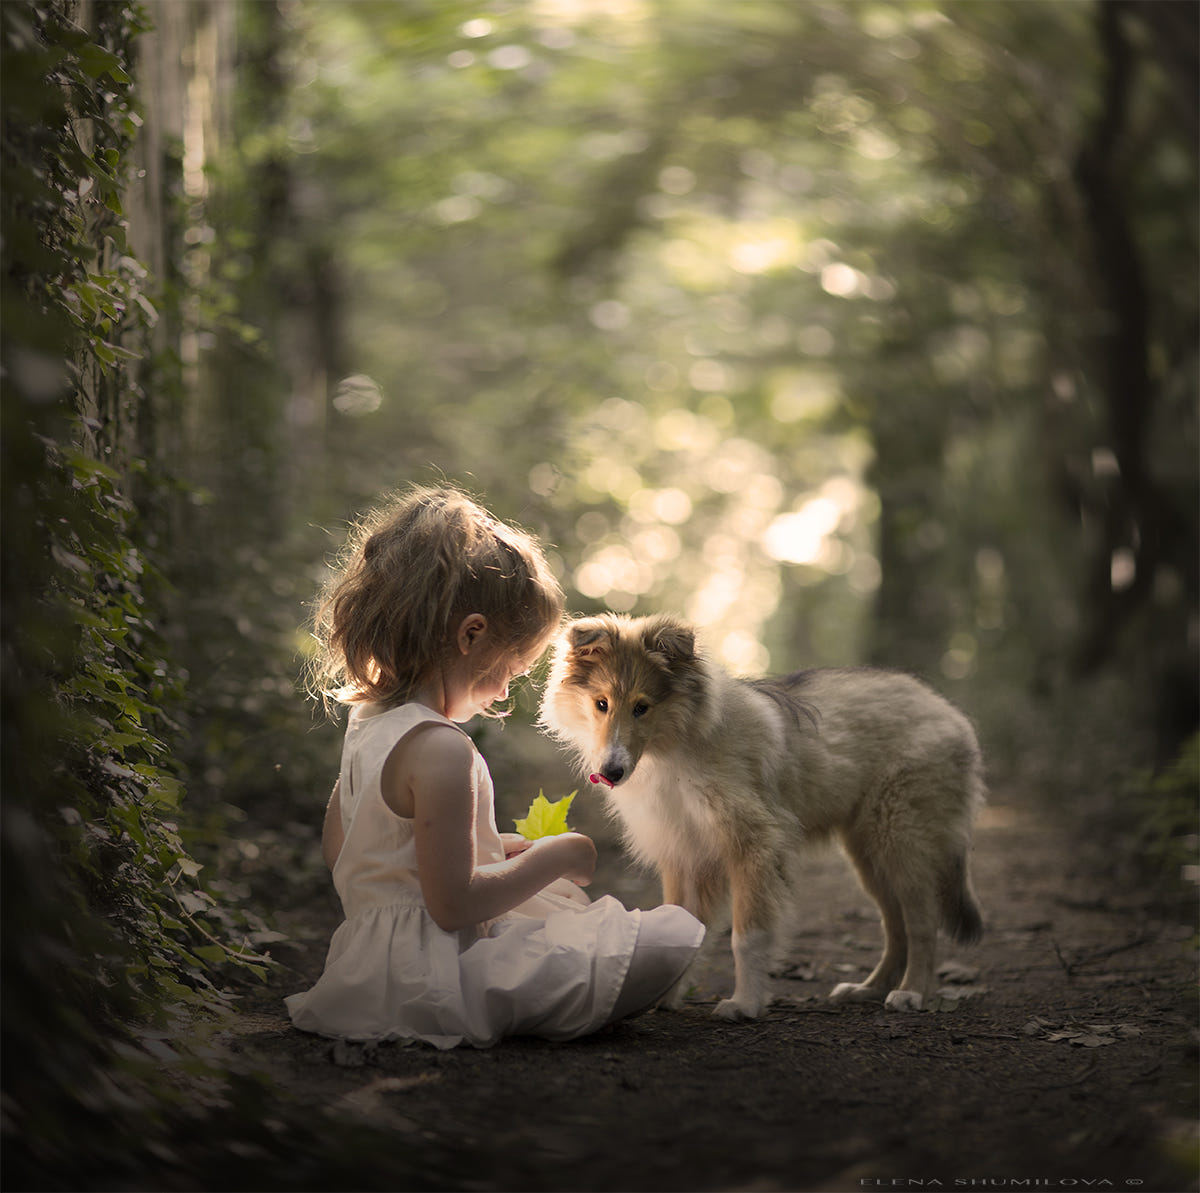 in a shady park... by Elena Shumilova on 500px